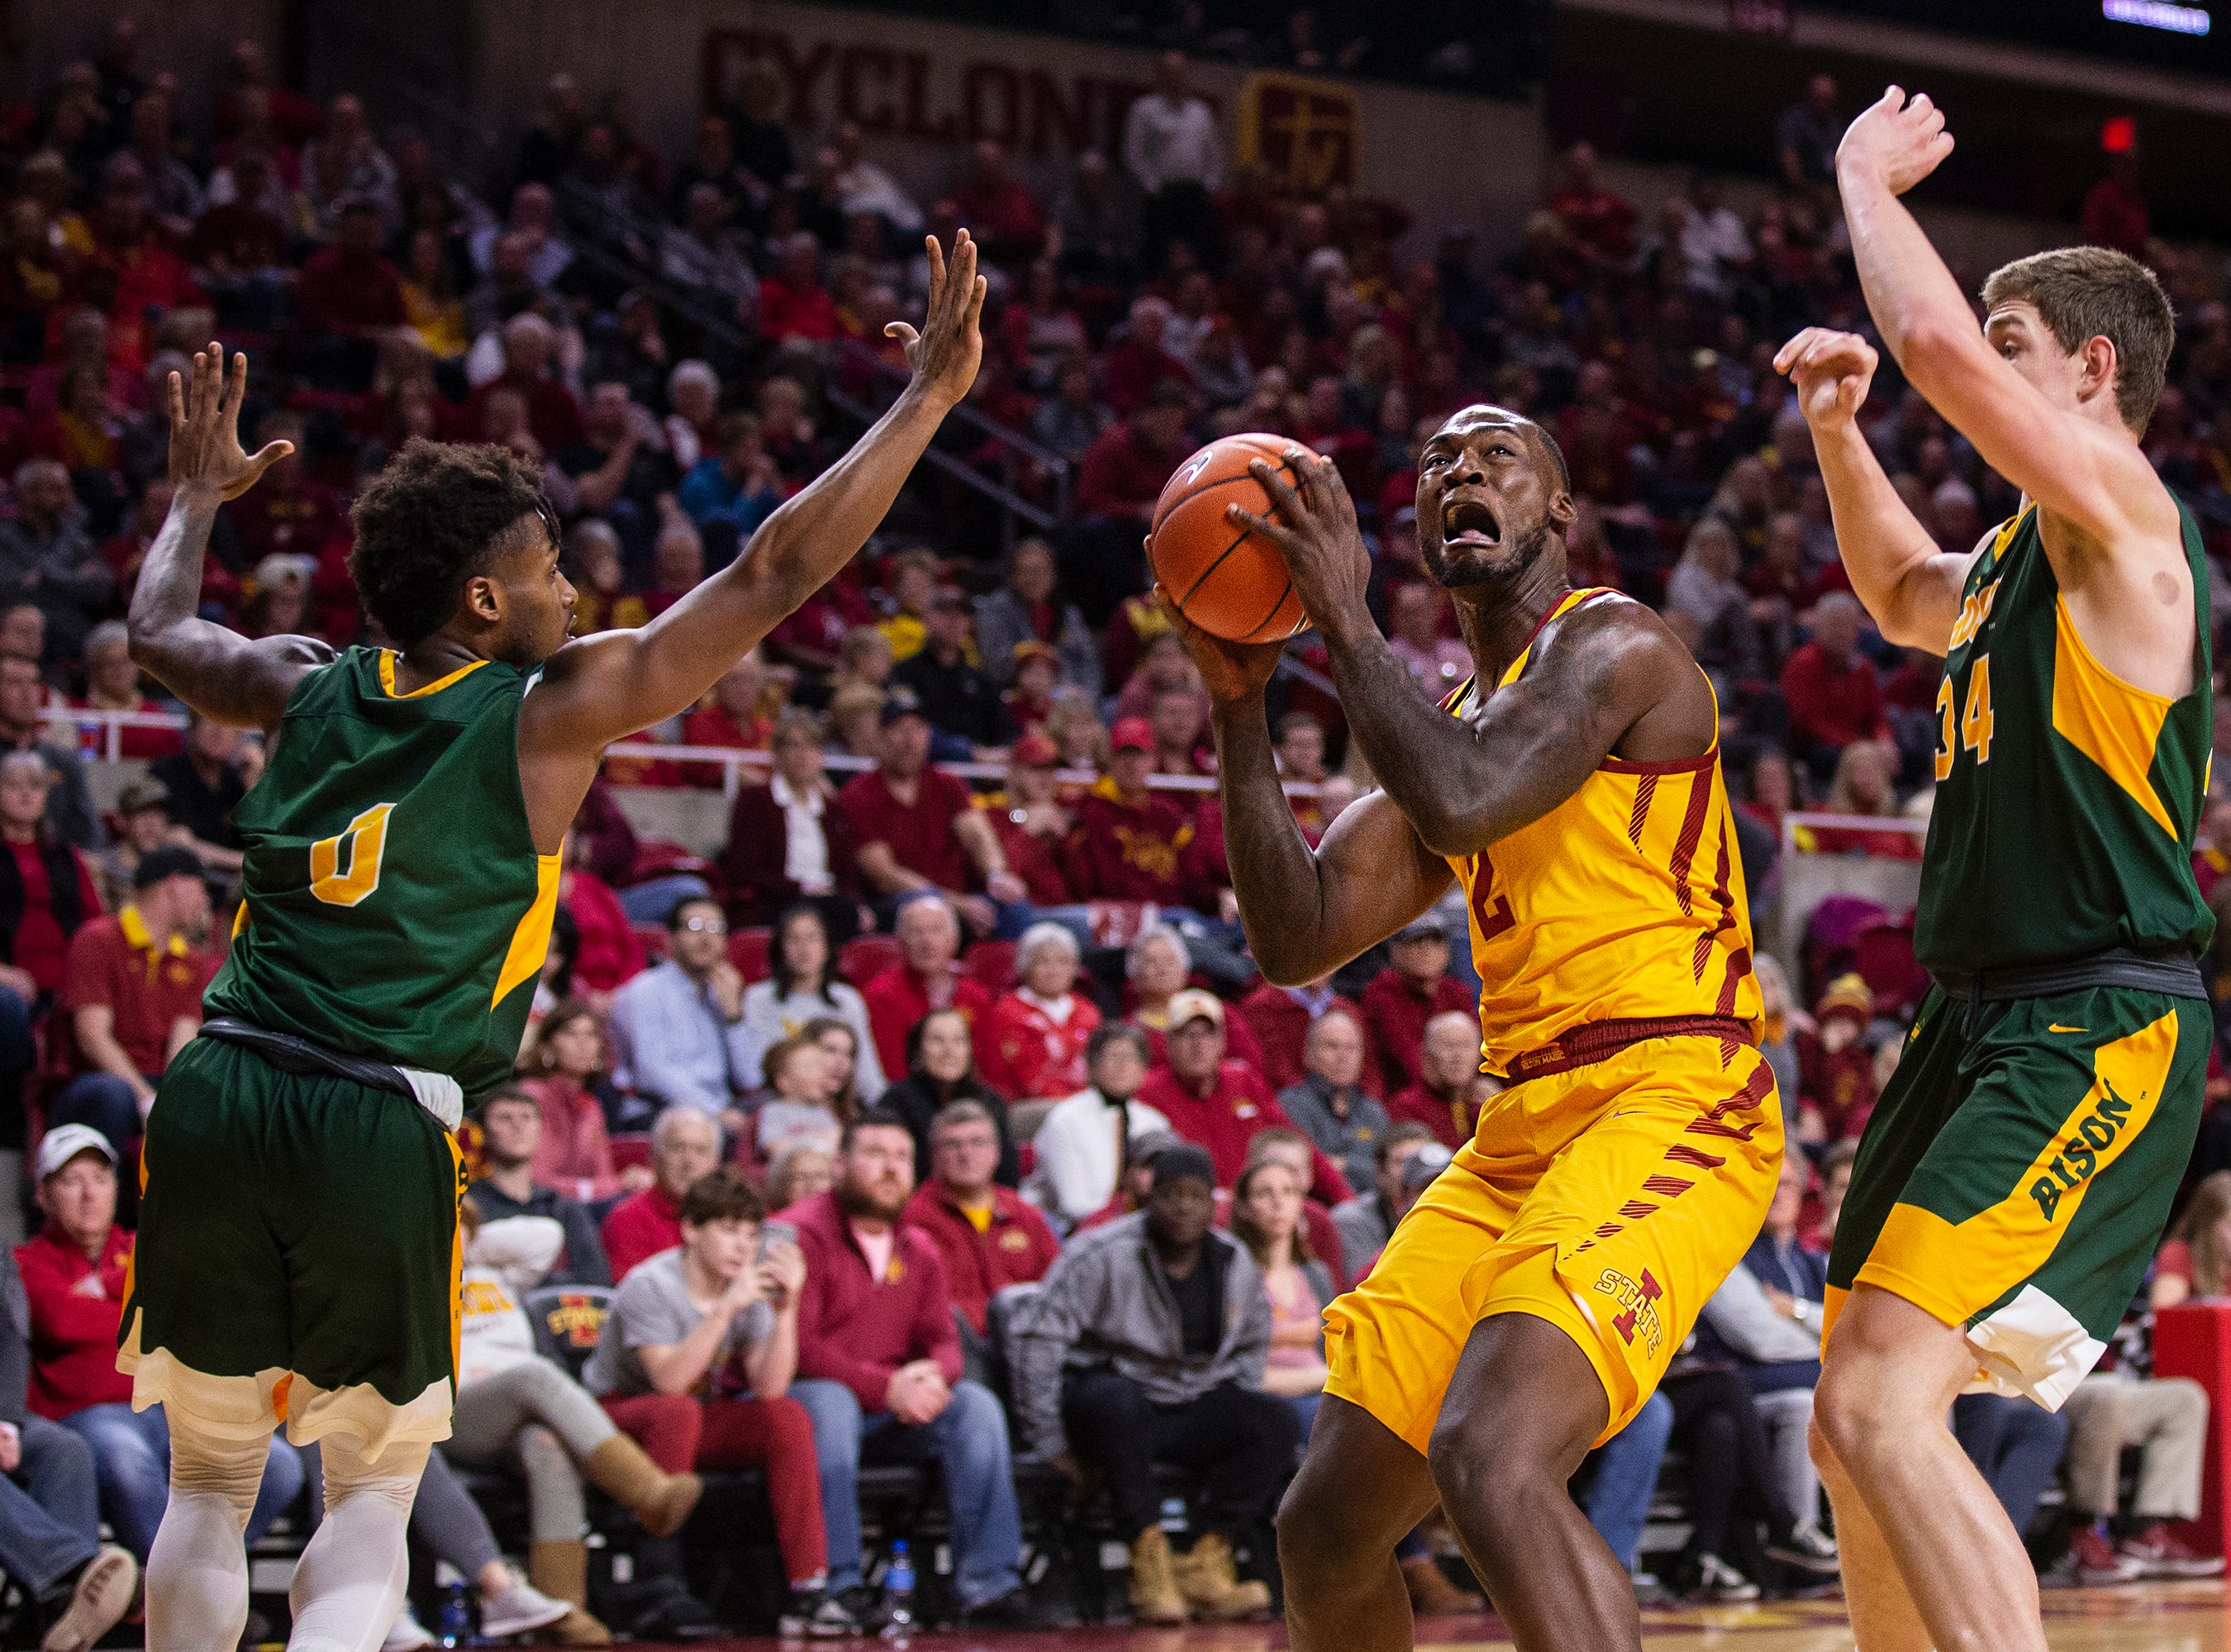 Iowa State's Cameron Lard goes up for a shot during the Iowa State men's basketball game against North Dakota State University on Monday, Dec. 3, 2018, in Hilton Coliseum.